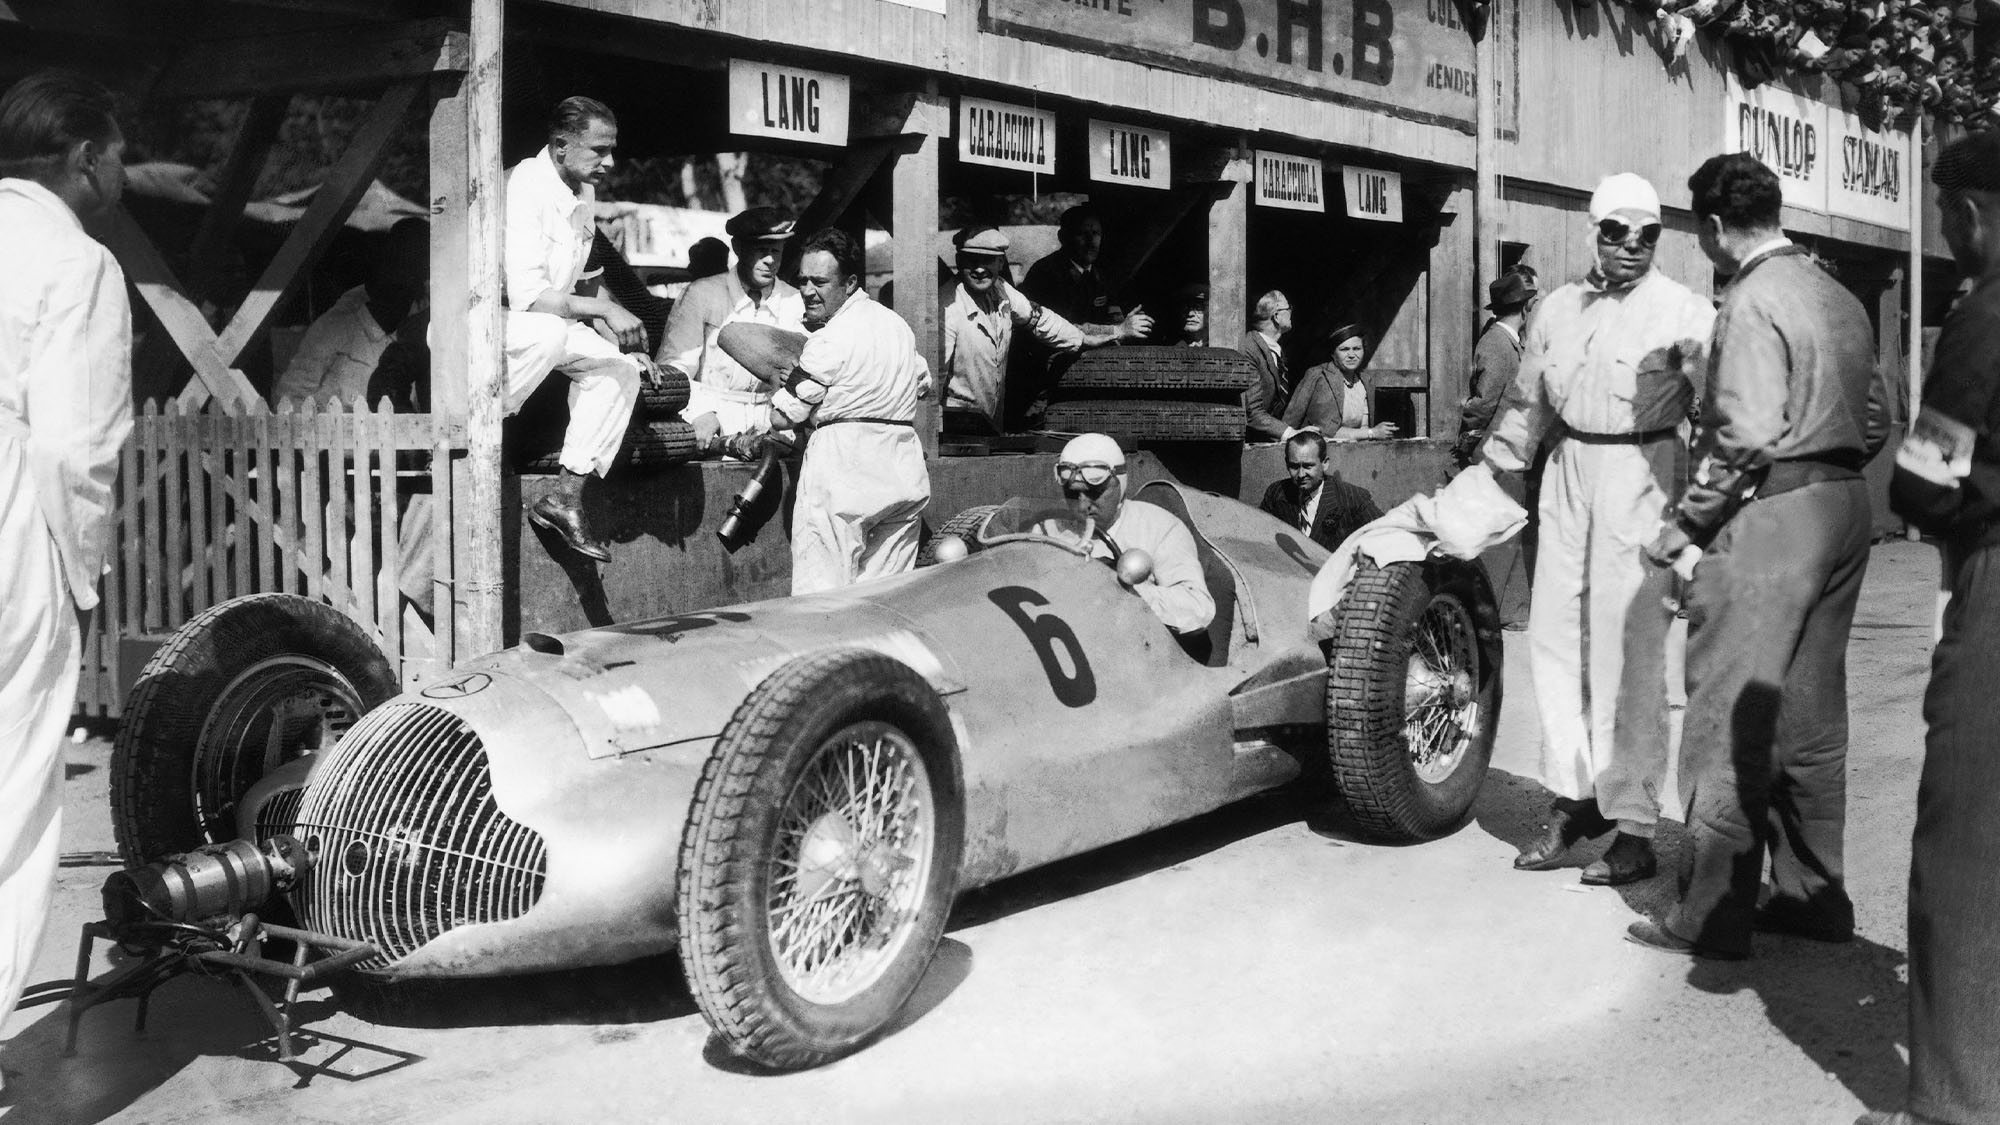 FRANCE - APRIL 11: The German Racecar Driver Rudolf Caracciola In His Mercedes-Benz W154, In The Daimler-Benz Stands At The Grand Prix De Pau On April 11, 1938. (Photo by Keystone-France/Gamma-Keystone via Getty Images)